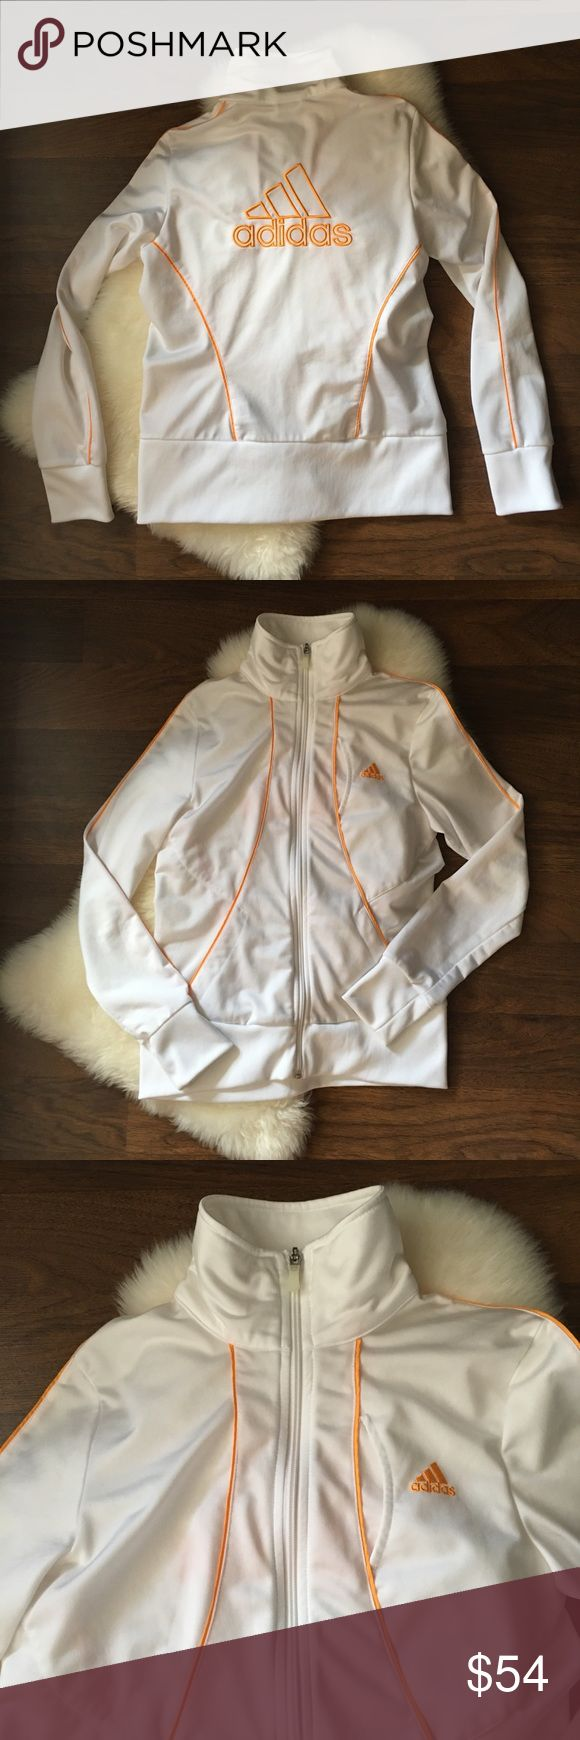 Adidas white zip up jacket with orange trim Adidas  White zip up jacket with orange trim  Size medium   🚭 Comes from a smoke-free home  🍀 No rips, tears, or stains 🦋 Excellent used condition adidas Jackets & Coats